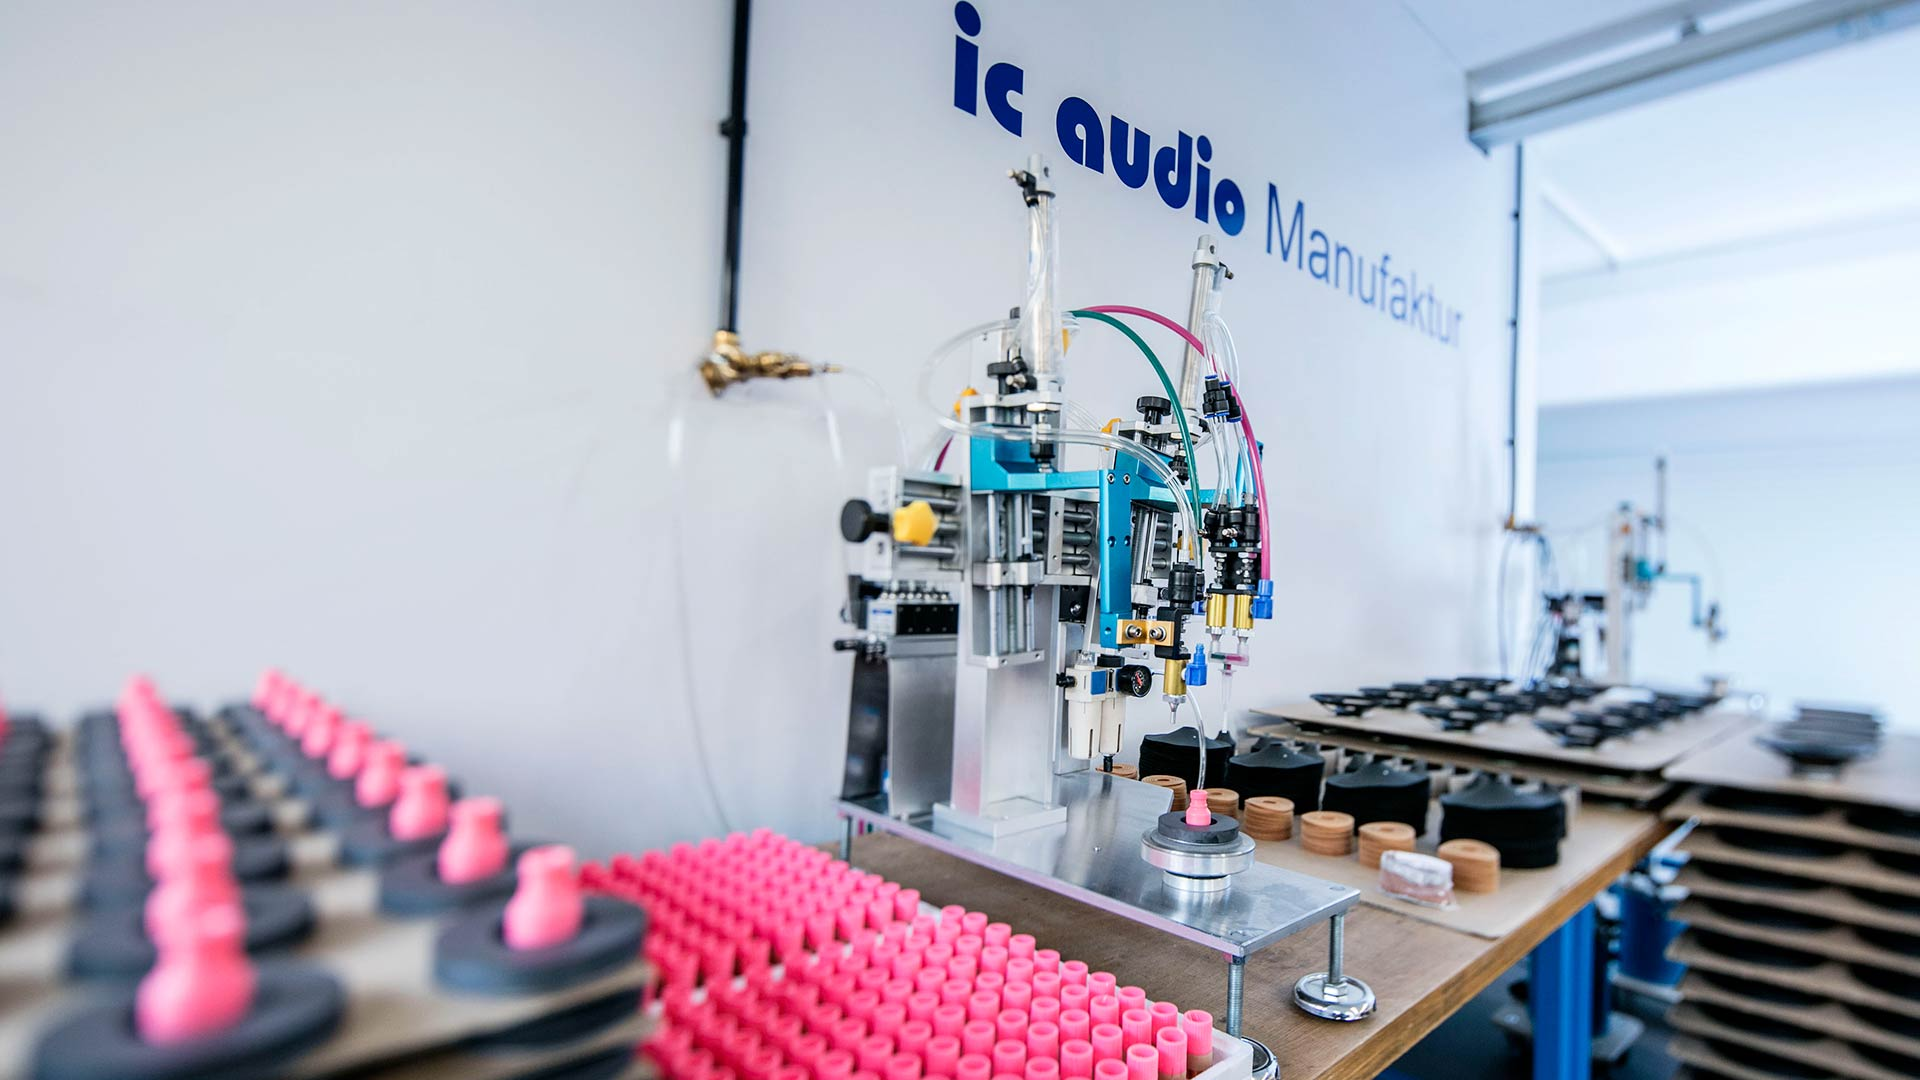 ic audio manufacture